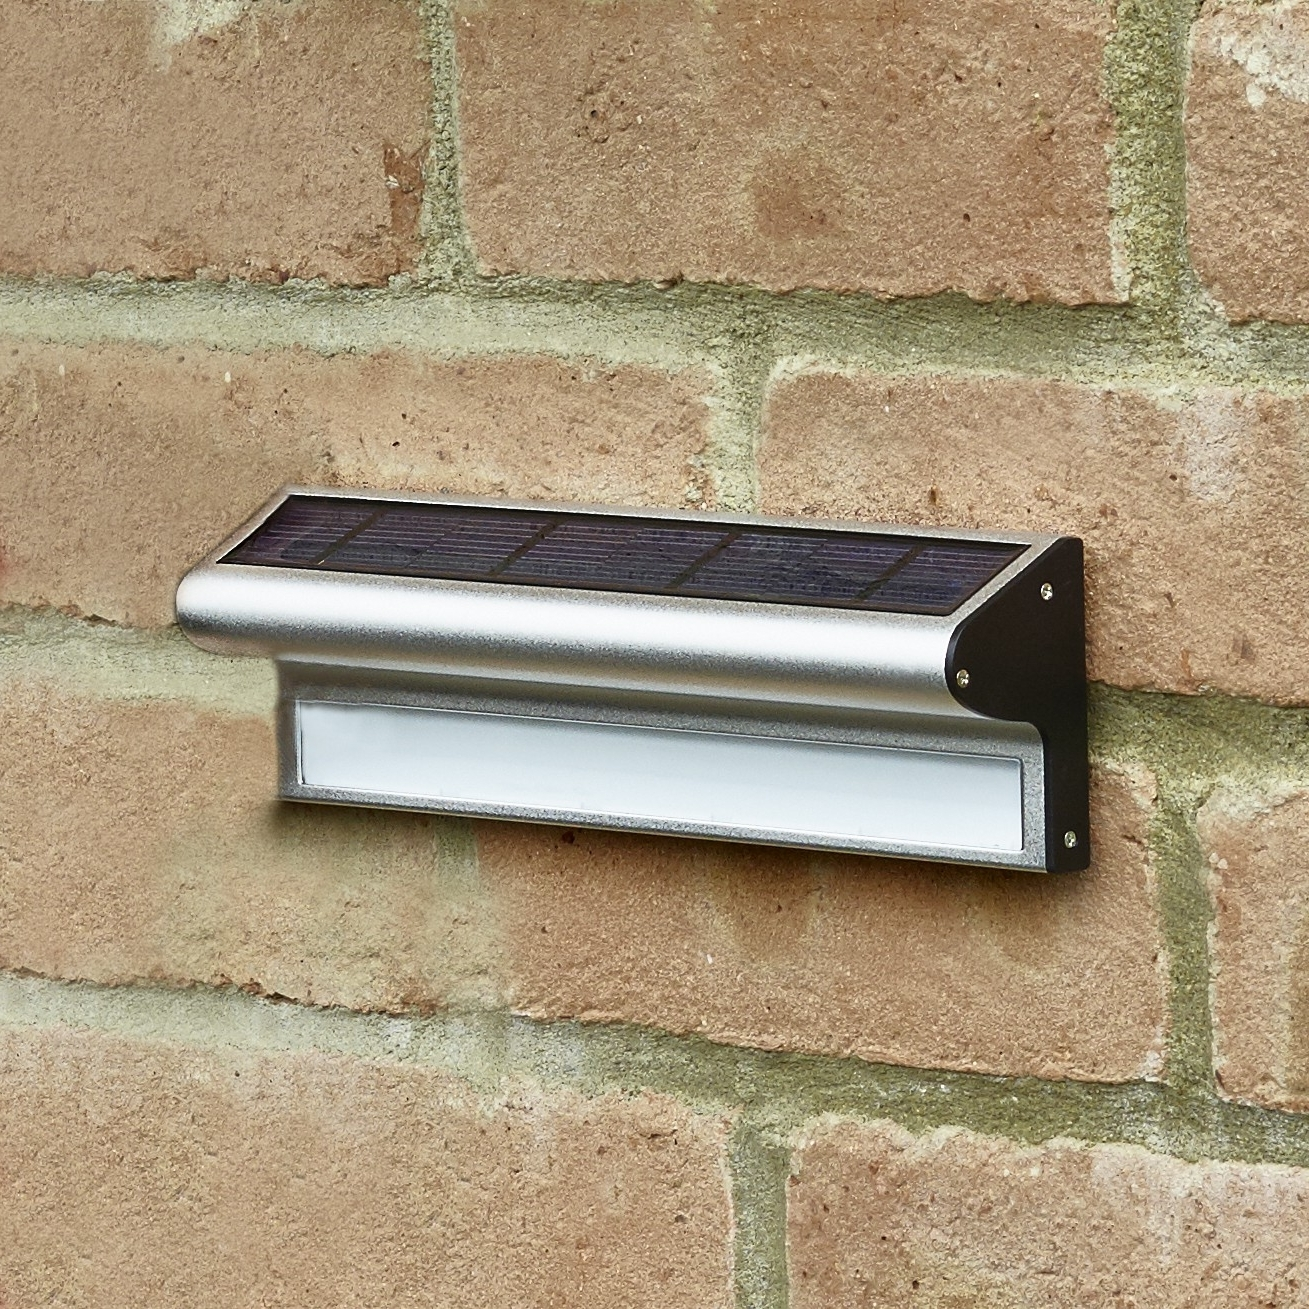 Solar Led Outdoor Wall Lighting Within Trendy Kensington Solar Led Wall Light – Lighting Direct (View 5 of 20)